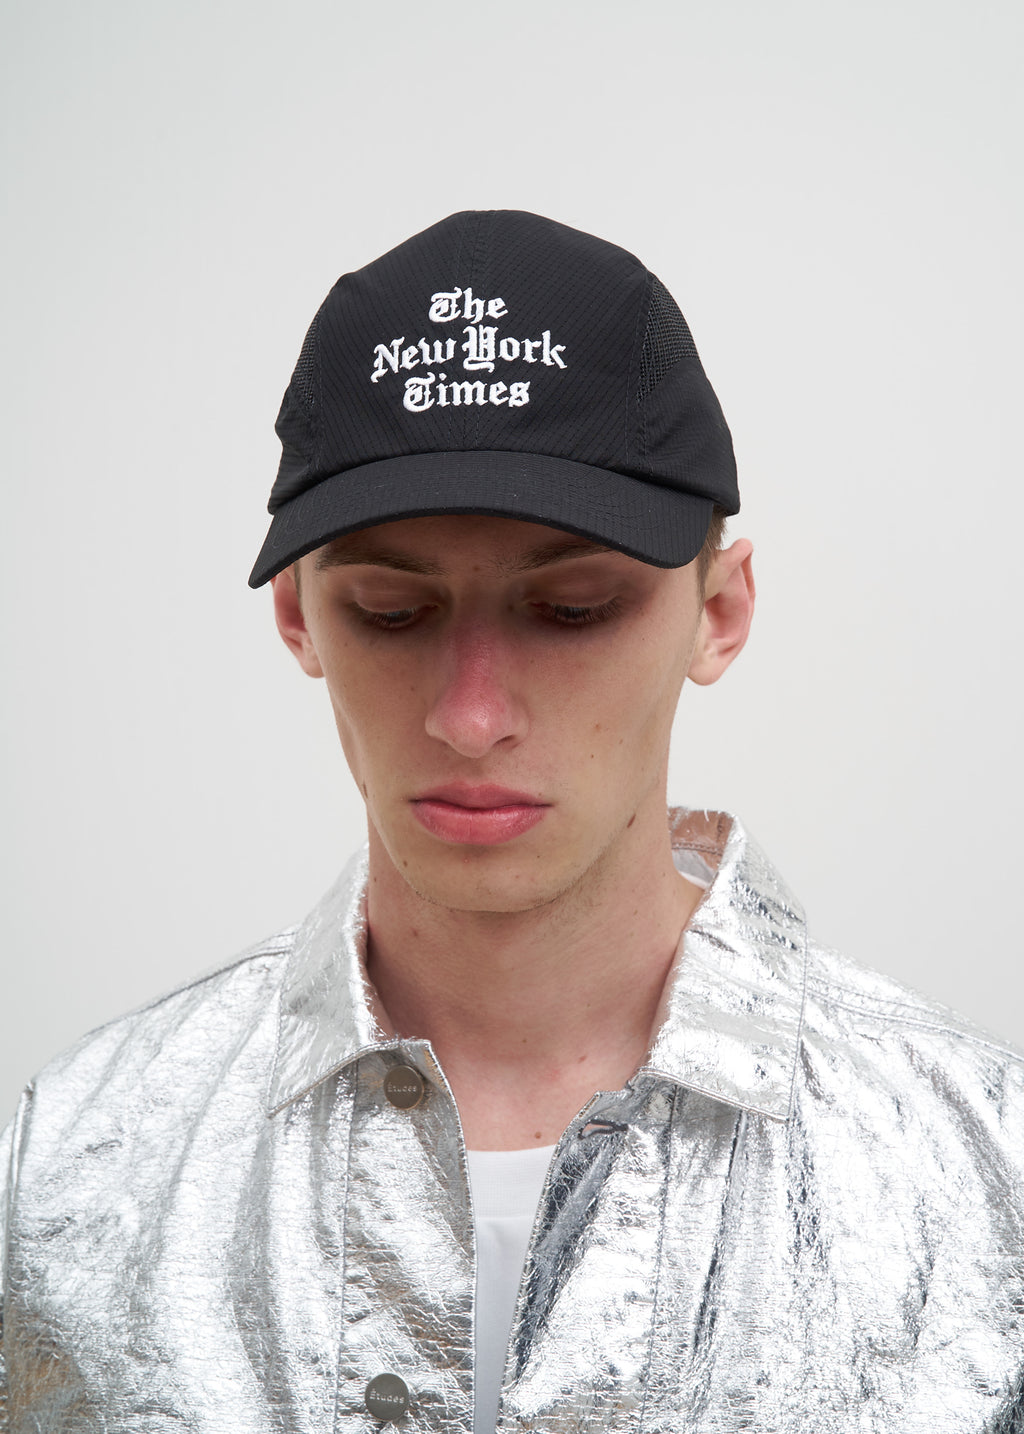 Etudes, Black Zone New York Times Hat, 017 Shop